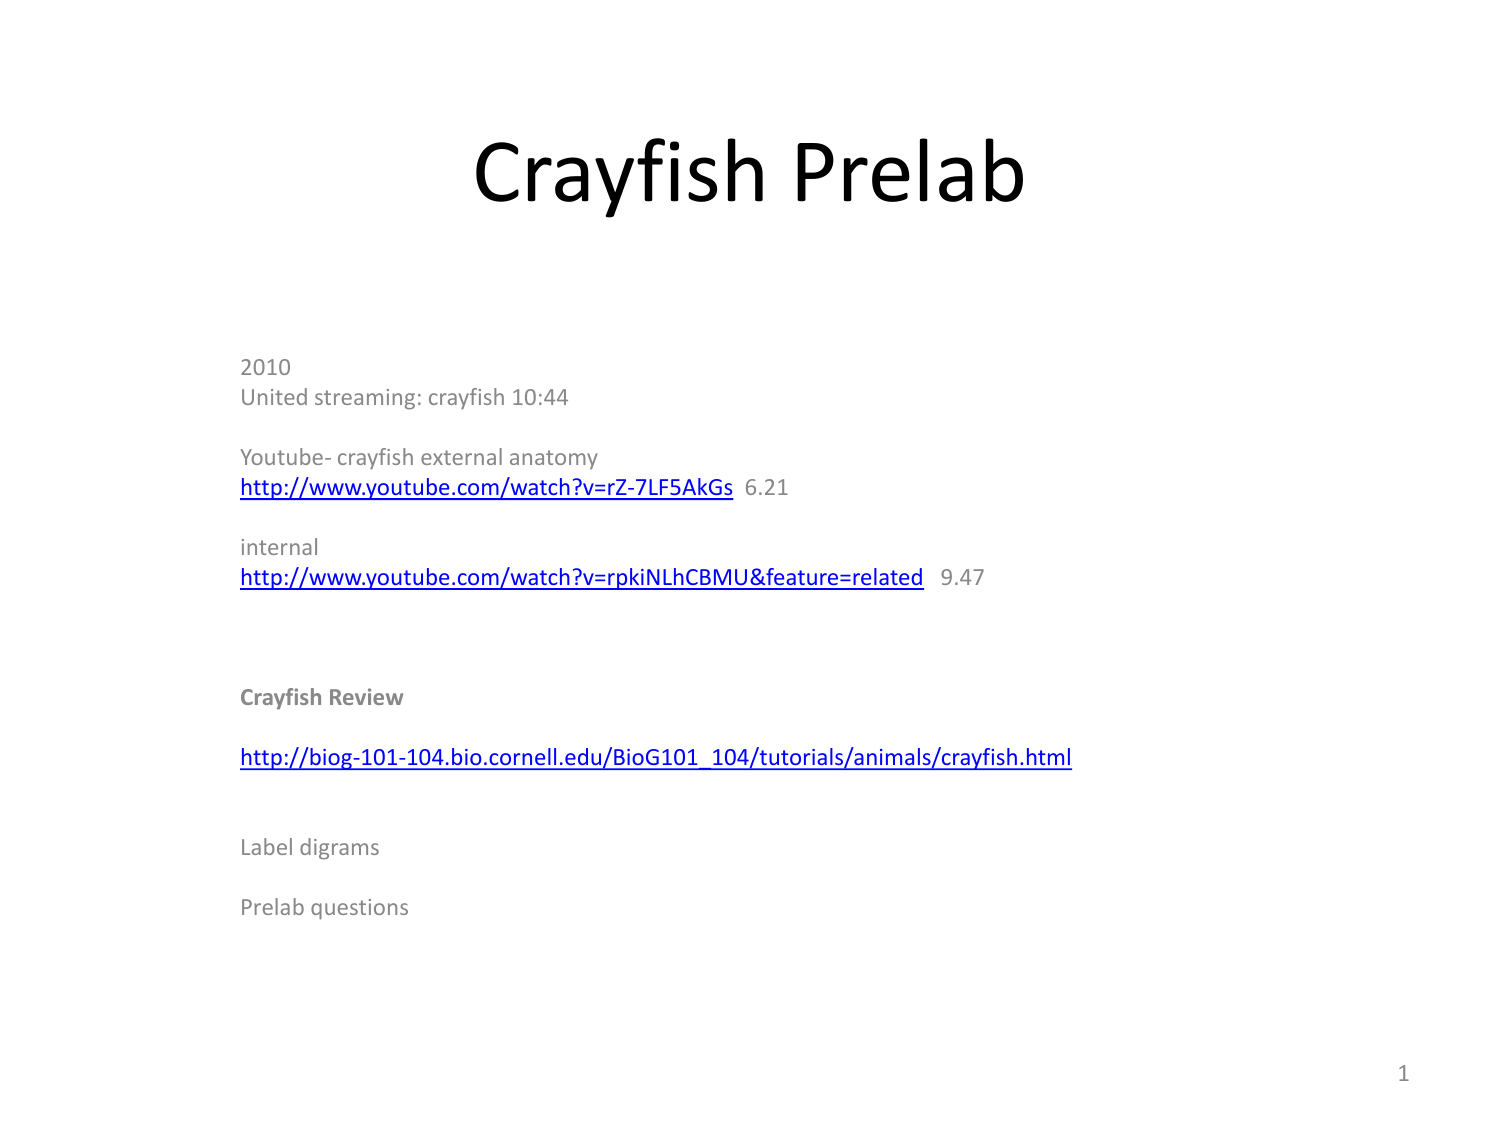 Crayfish prelab power pt